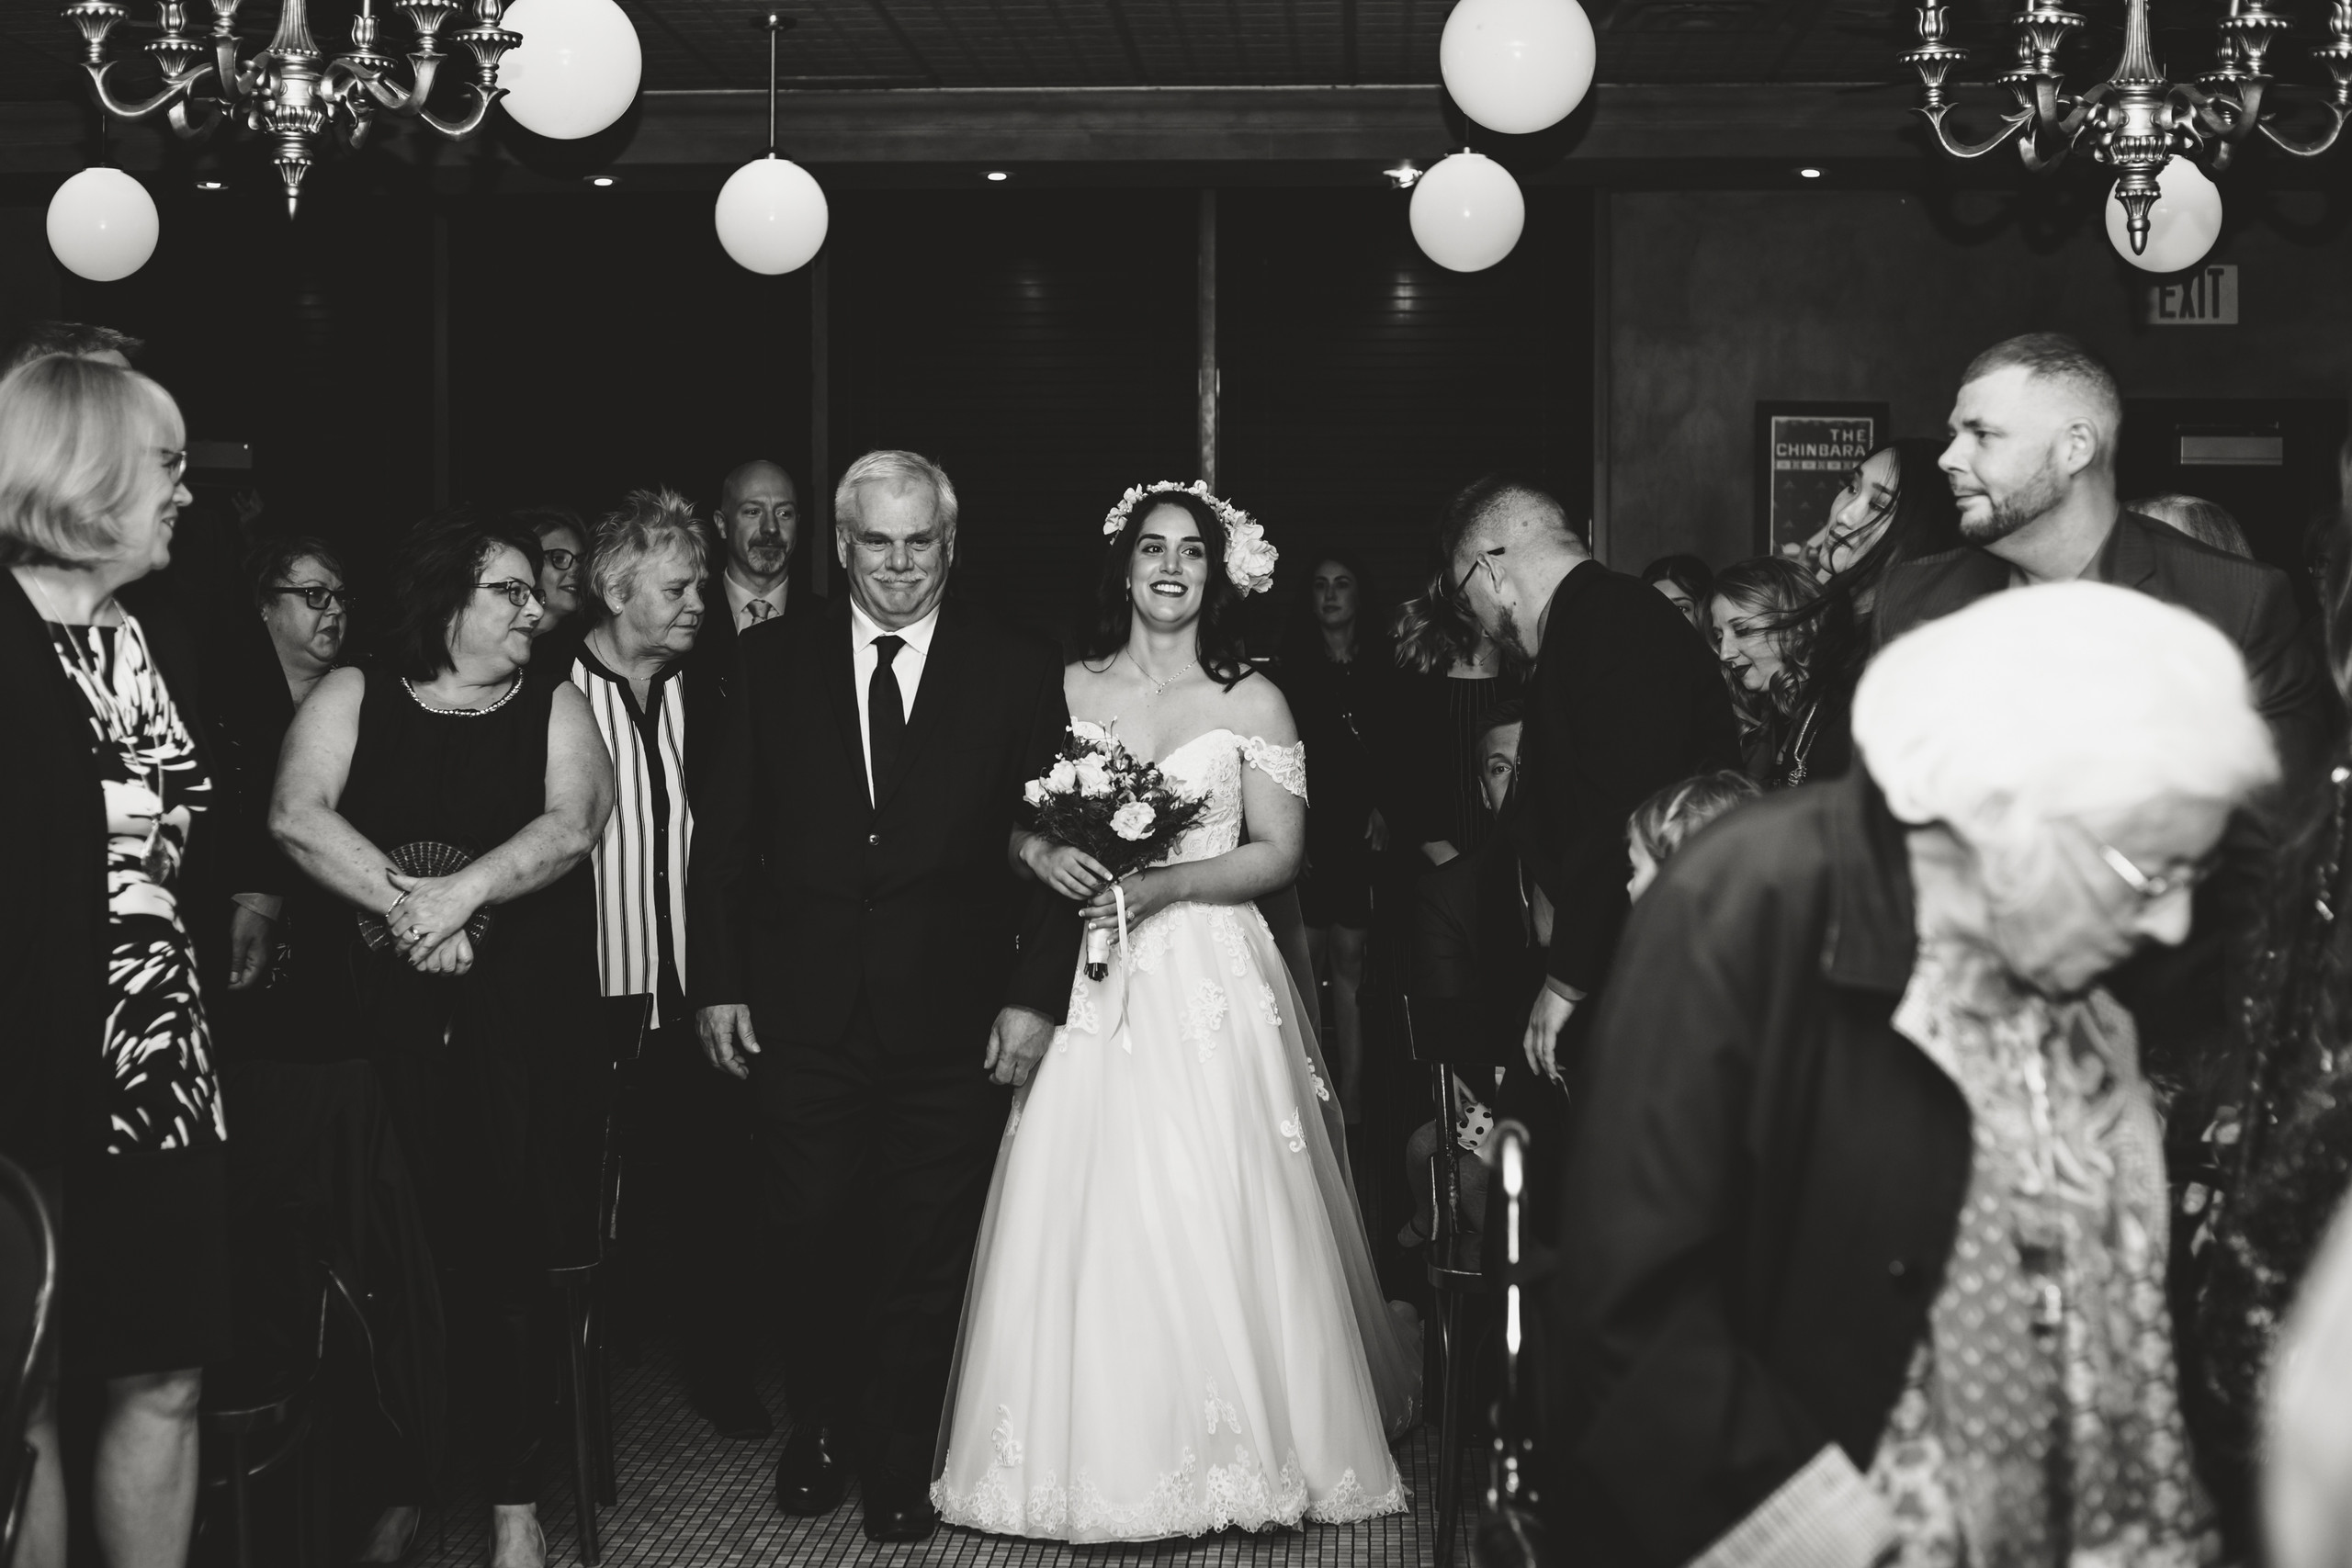 Bride walking down the aisle with her father at an intimate wedding ceremony at the Metropolitain Brasserie.